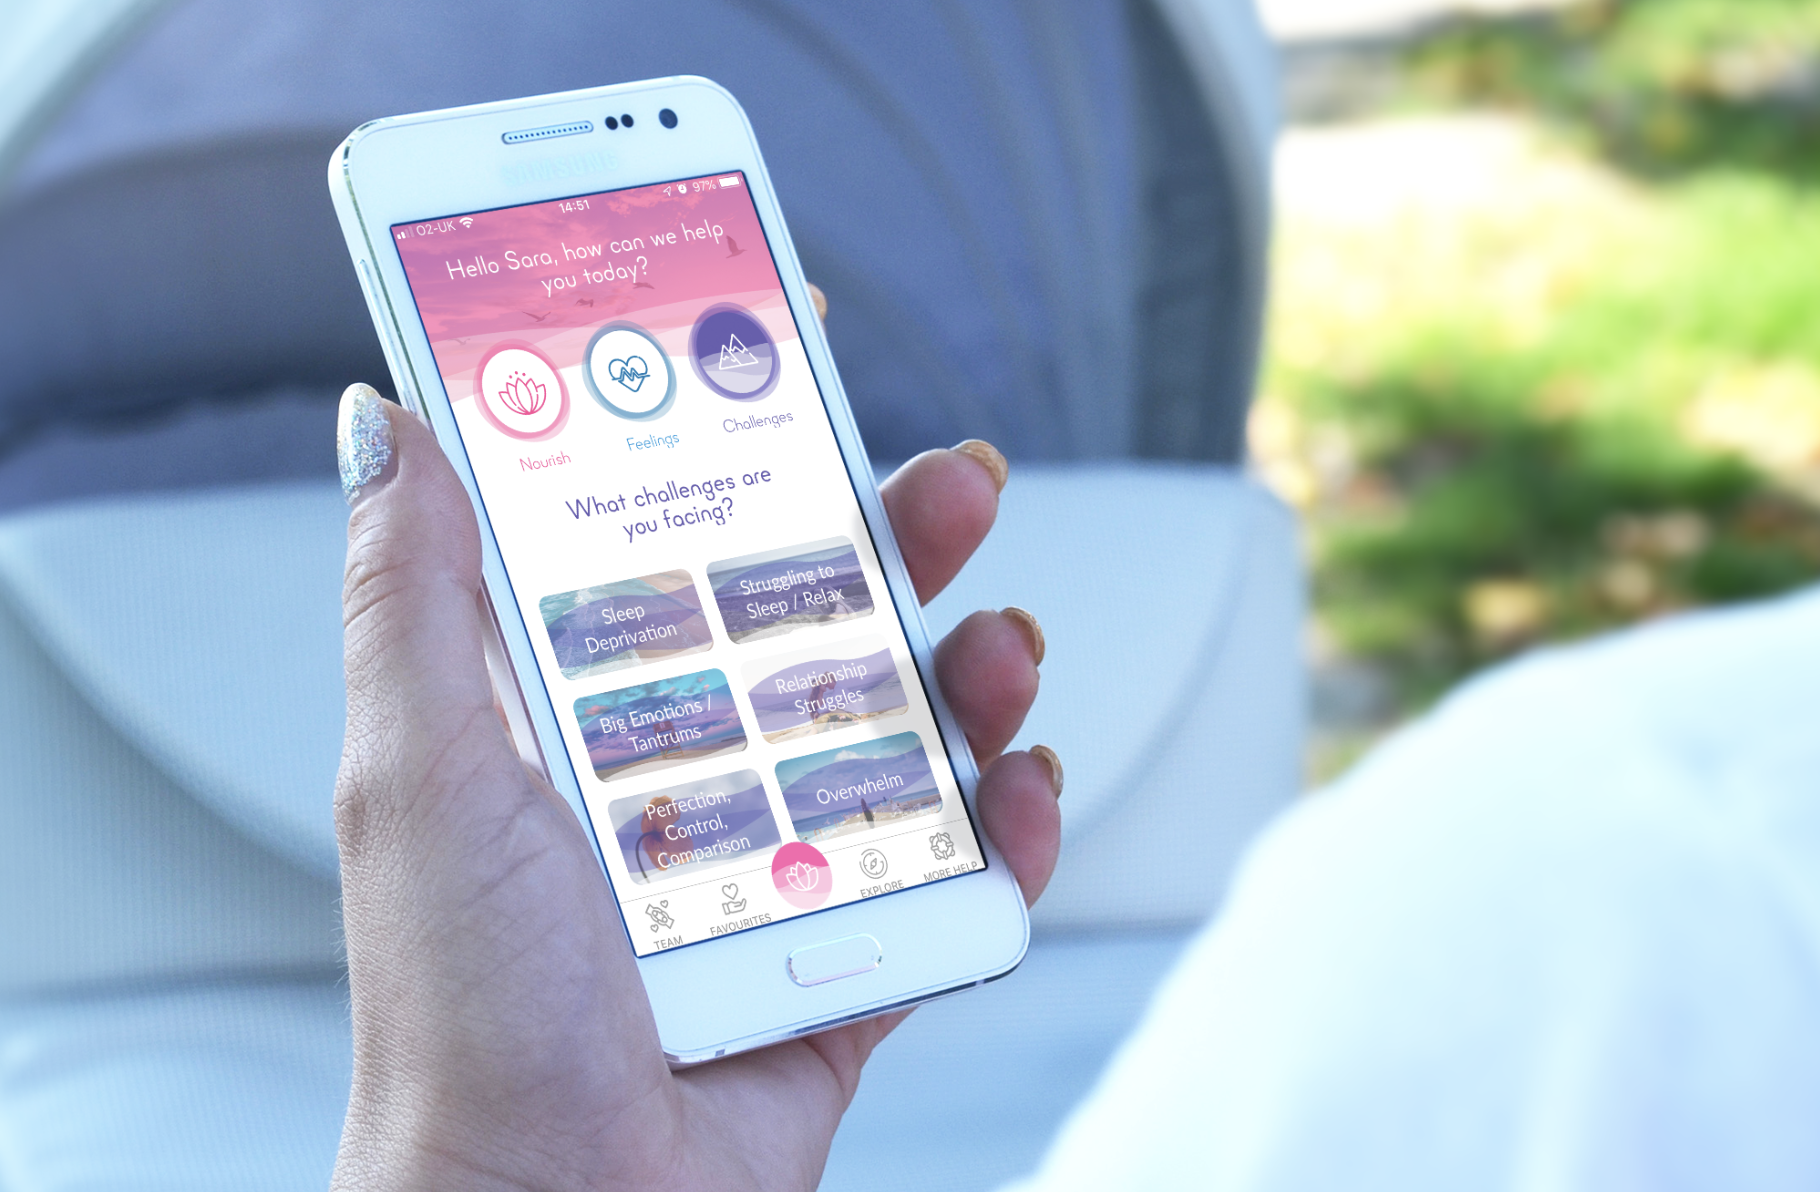 """A white smartphone shows a pink and purple themed app interface. Buttons show """"nourish, feelings, challenges"""" and the text """"Hello Sara, how can we help you today?"""""""